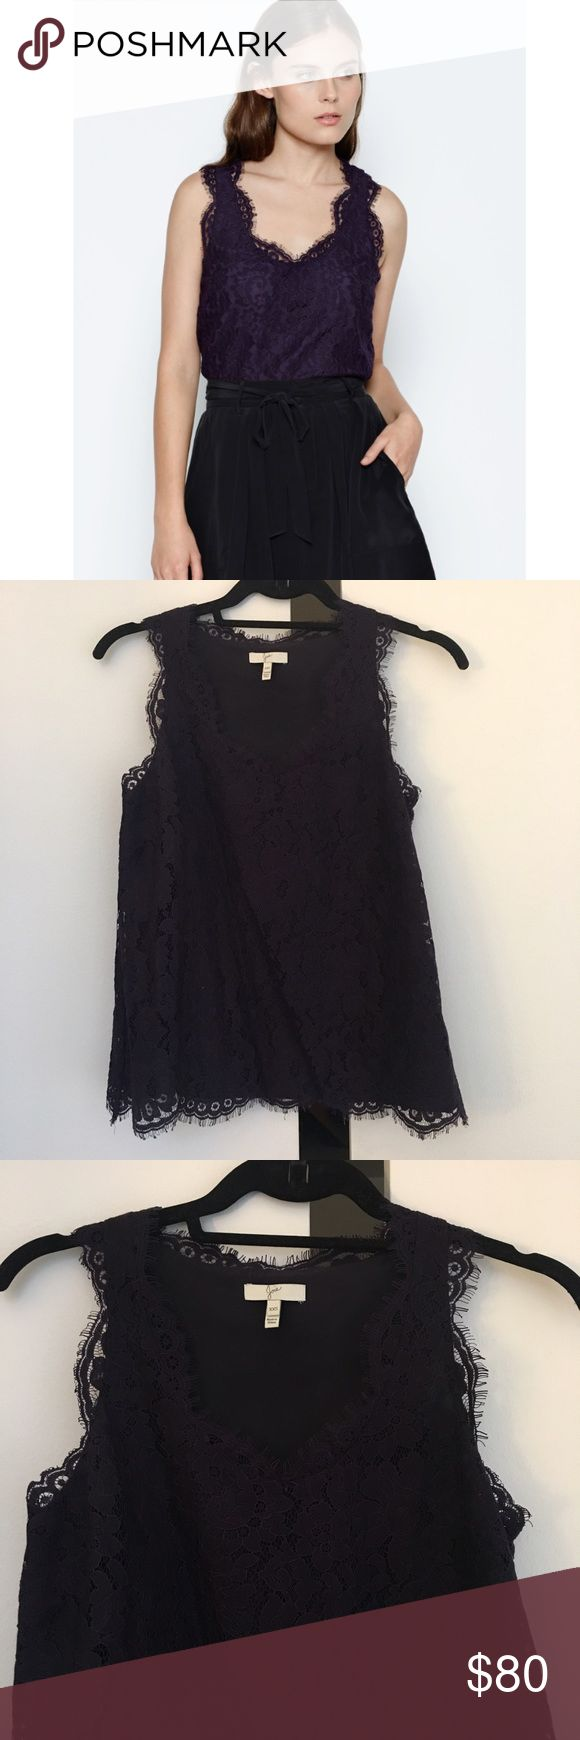 Joie Cina Lace Tank NWOT! Never worn. In perfect condition Joie Tops Tank Tops